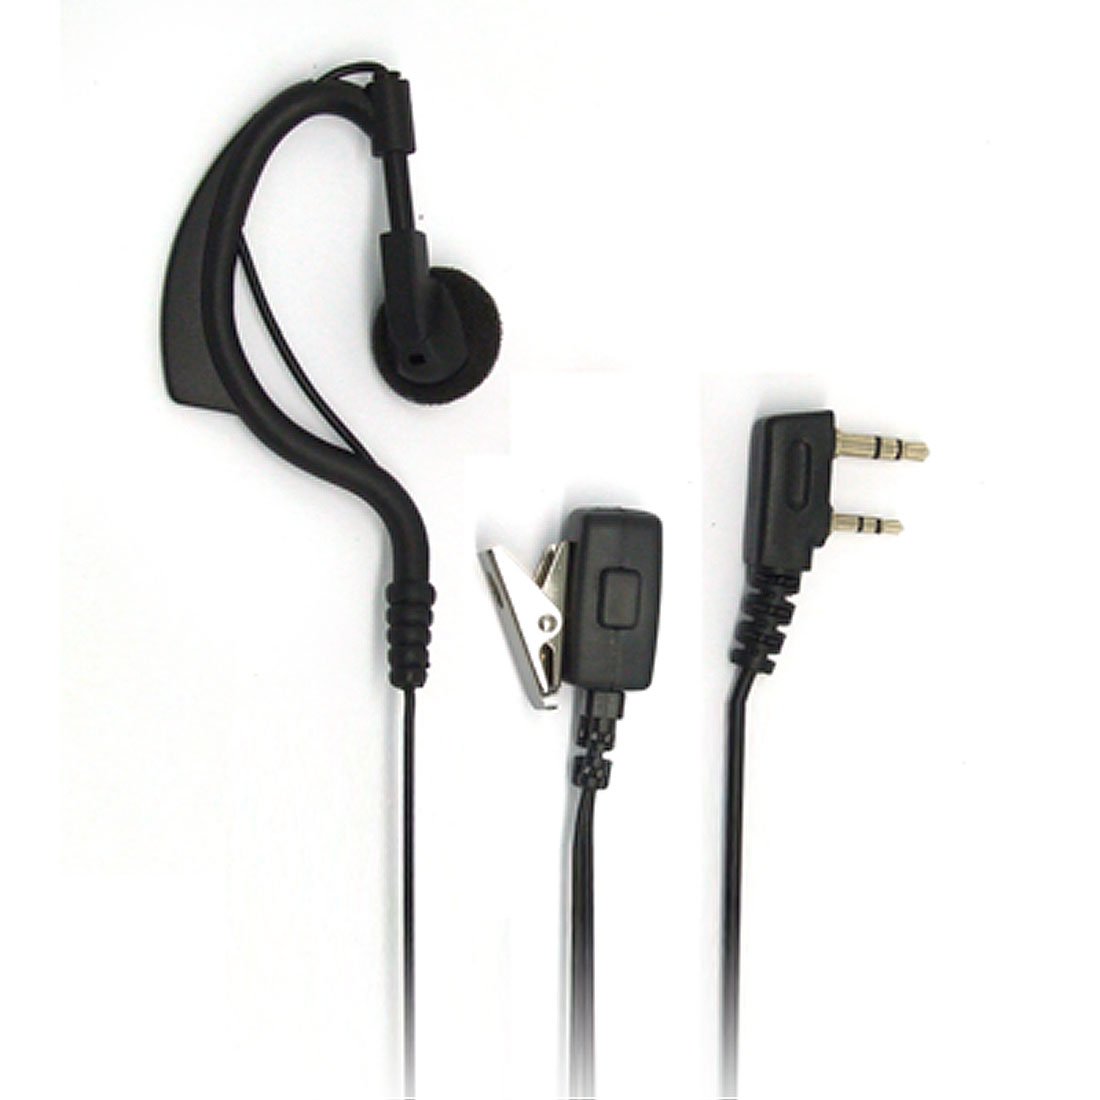 Radio Earhook Earphone Walkie Talkie for Kenwood w. Clip